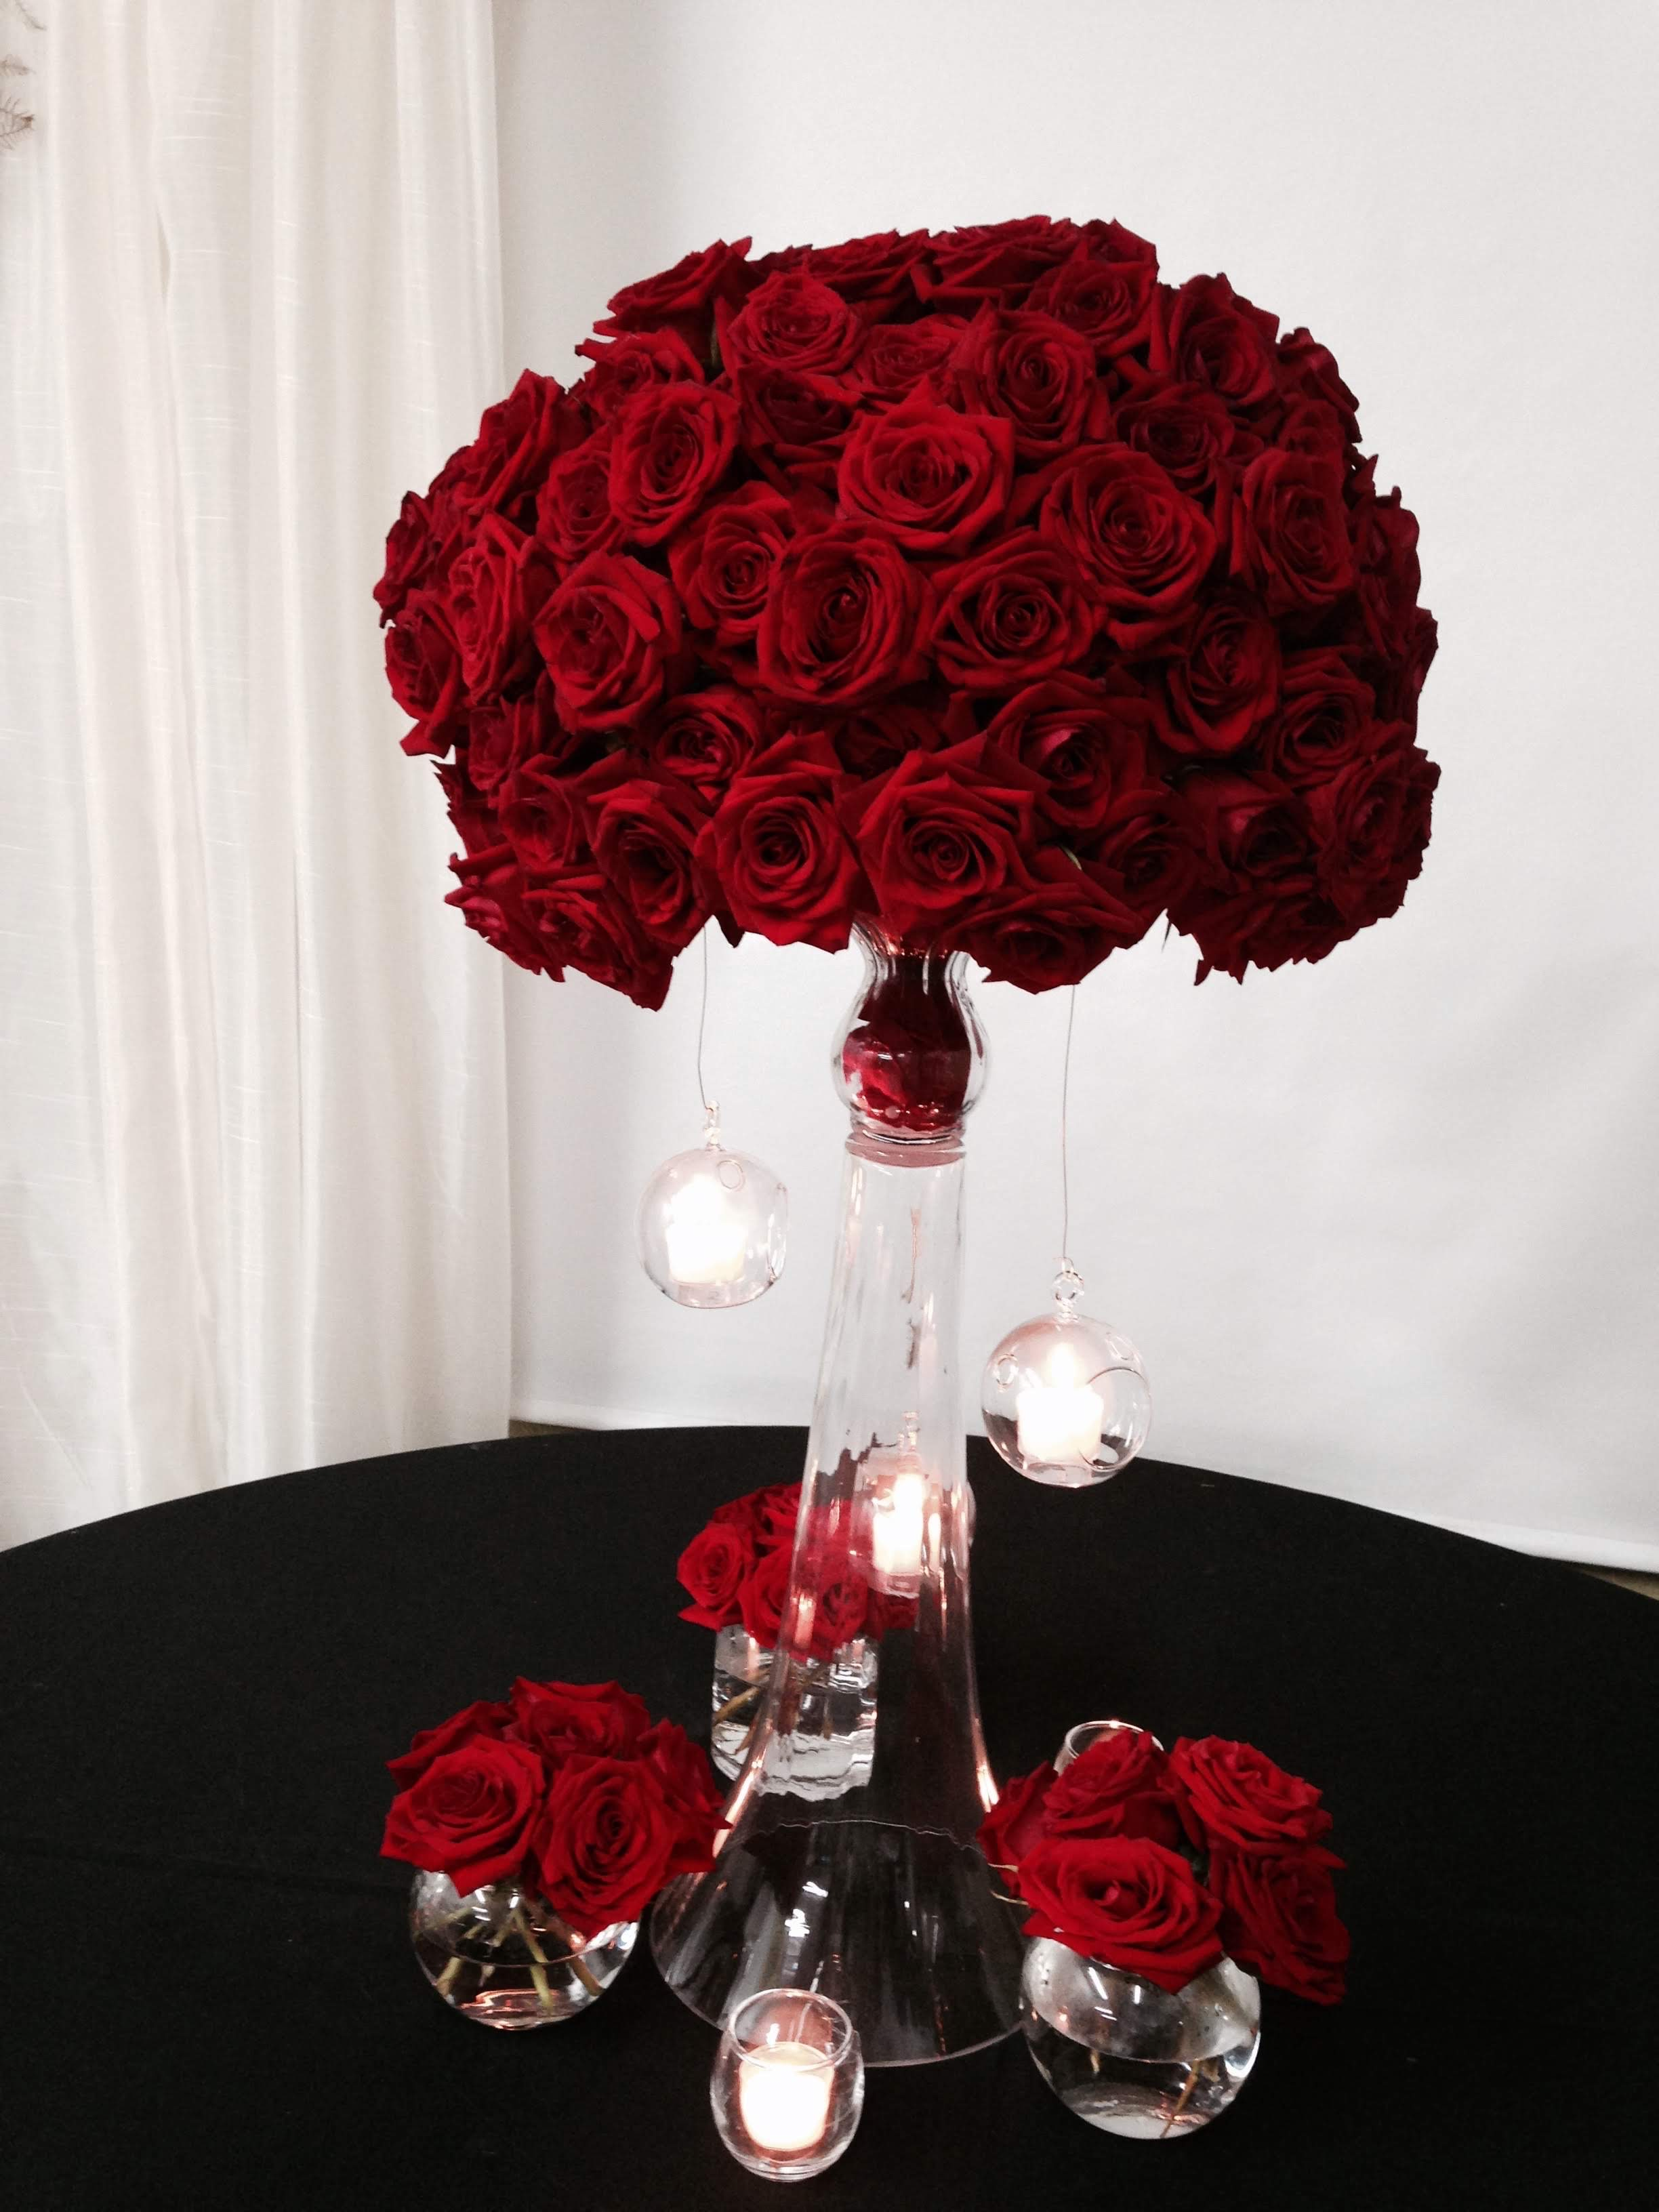 Dark Red Rose Floral Arrangement Velene's Floral